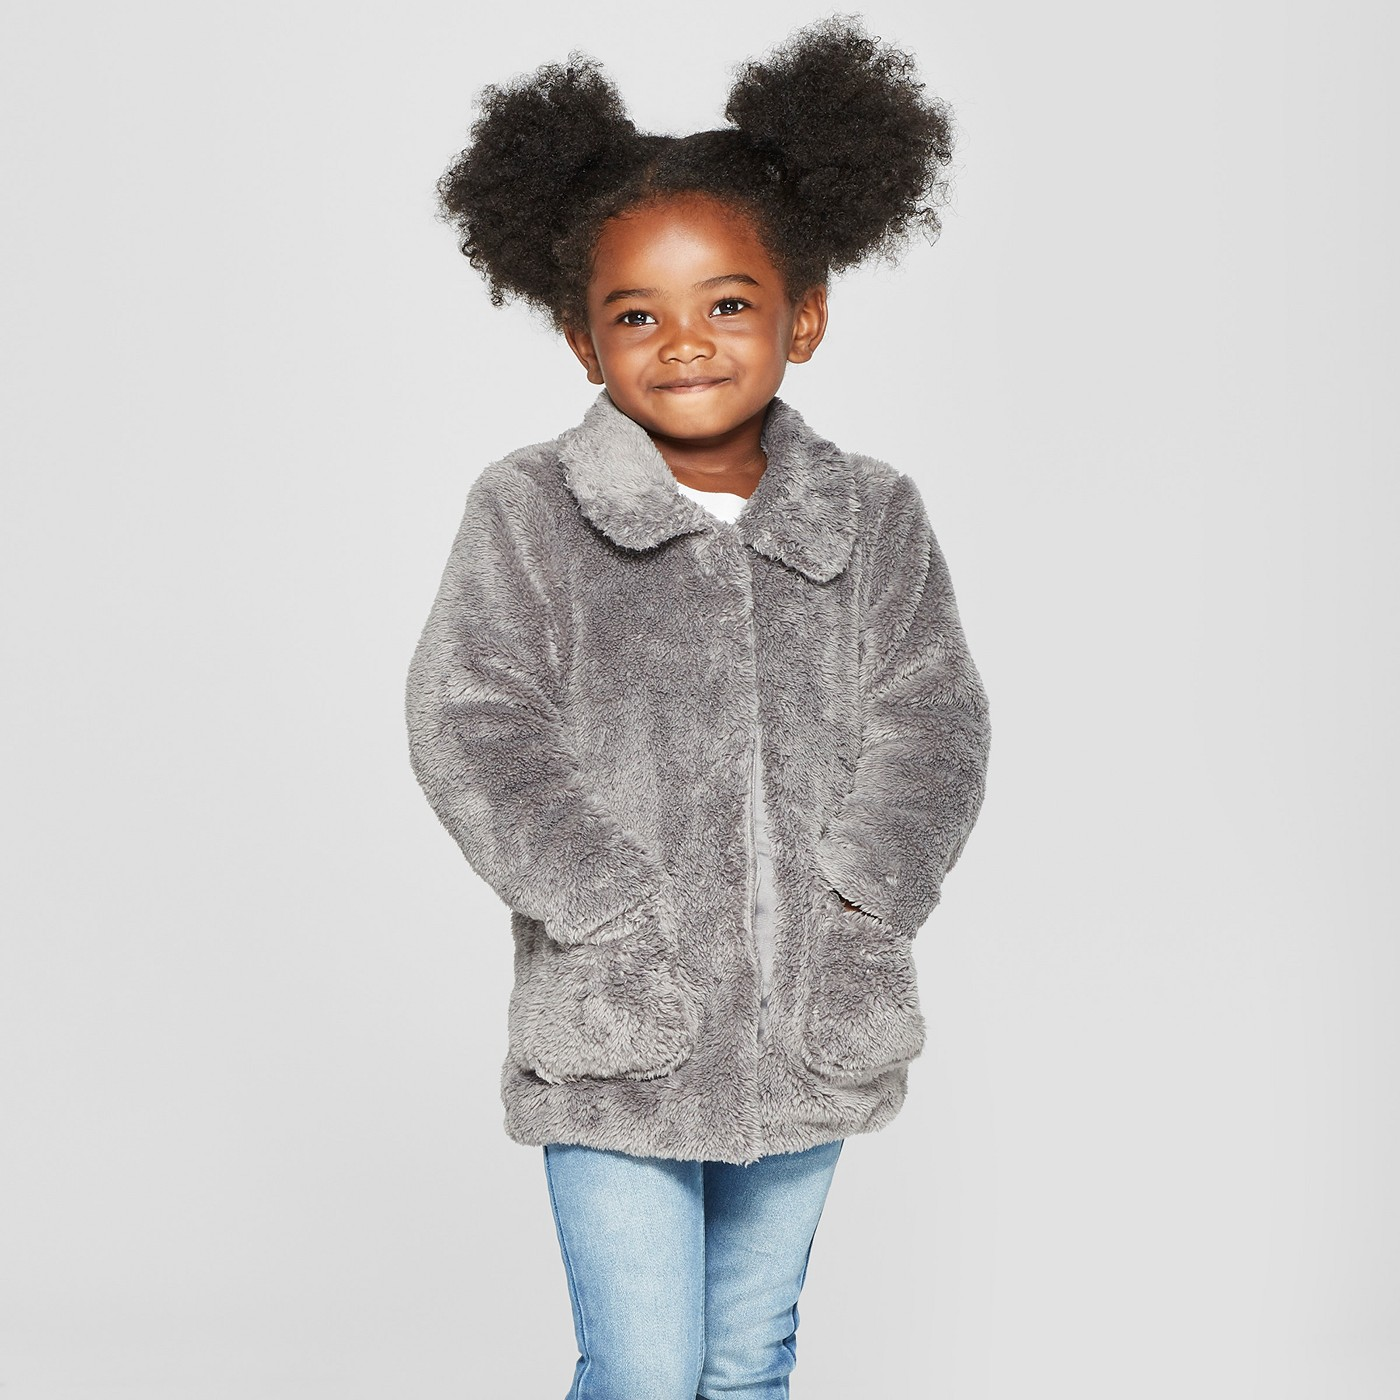 Toddler Girls' Faux Fur Jacket - Cat & Jack™ Gray - image 1 of 3